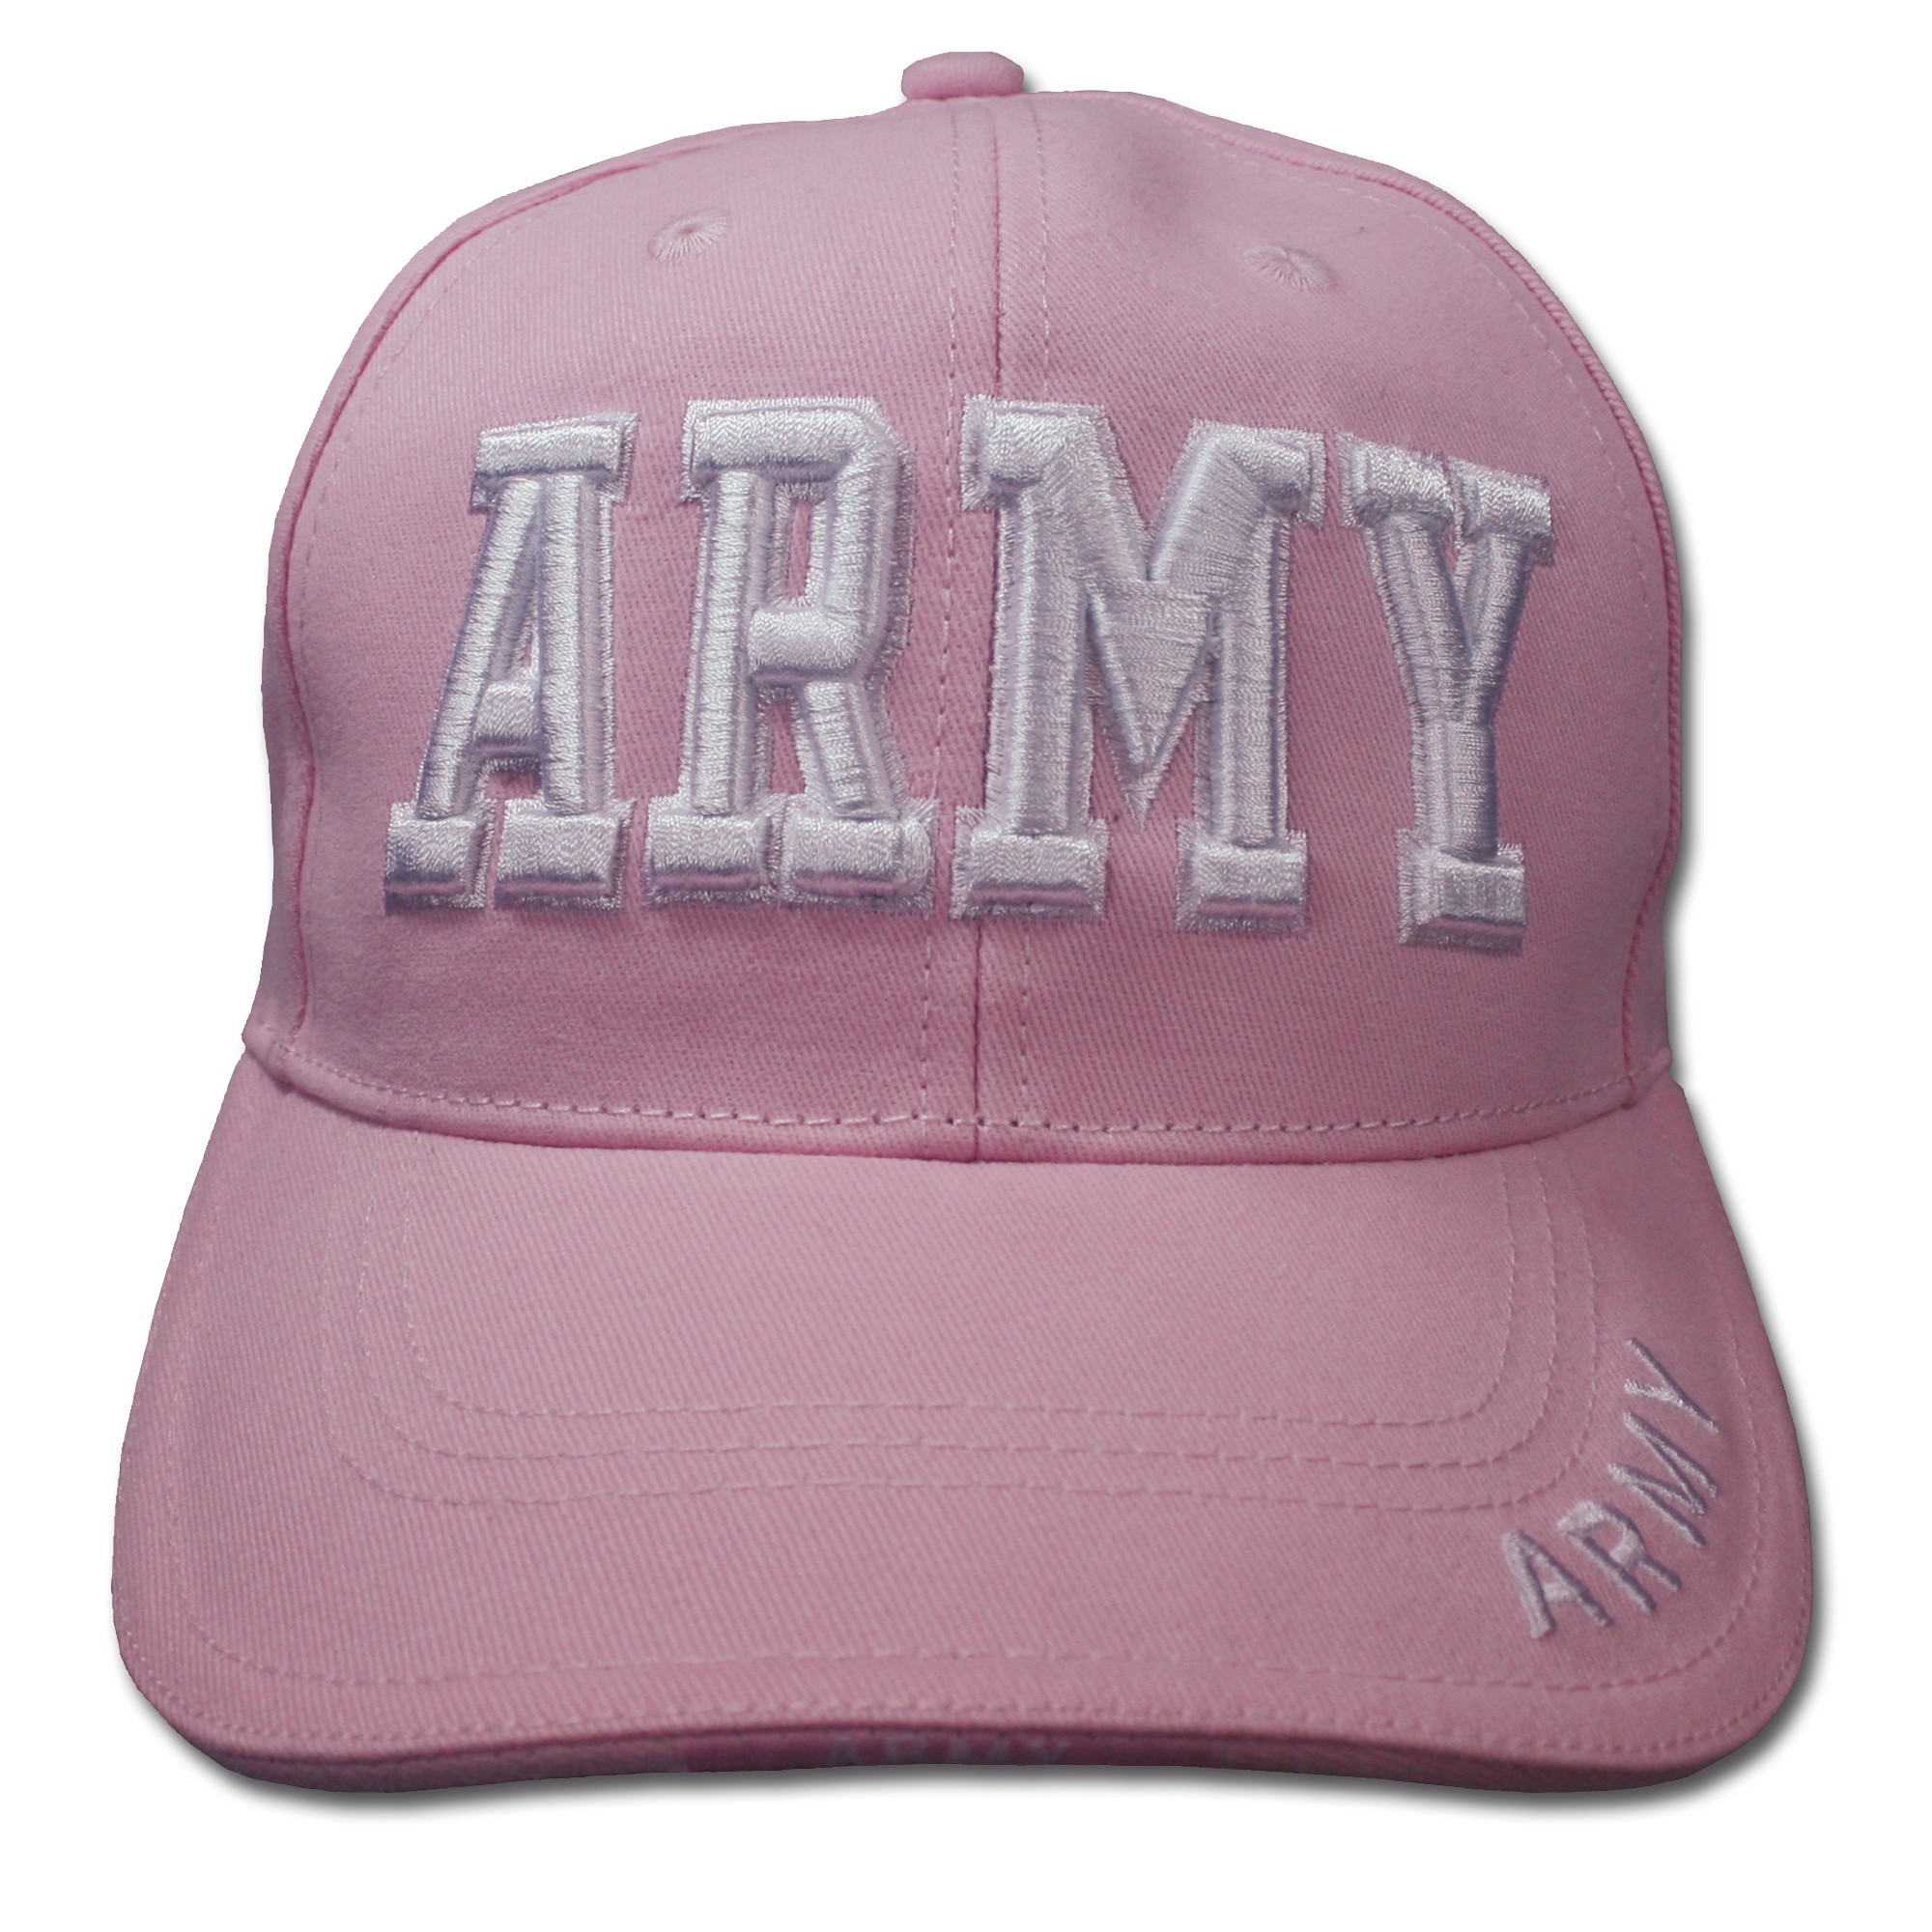 Casquette Baseball ARMY pink